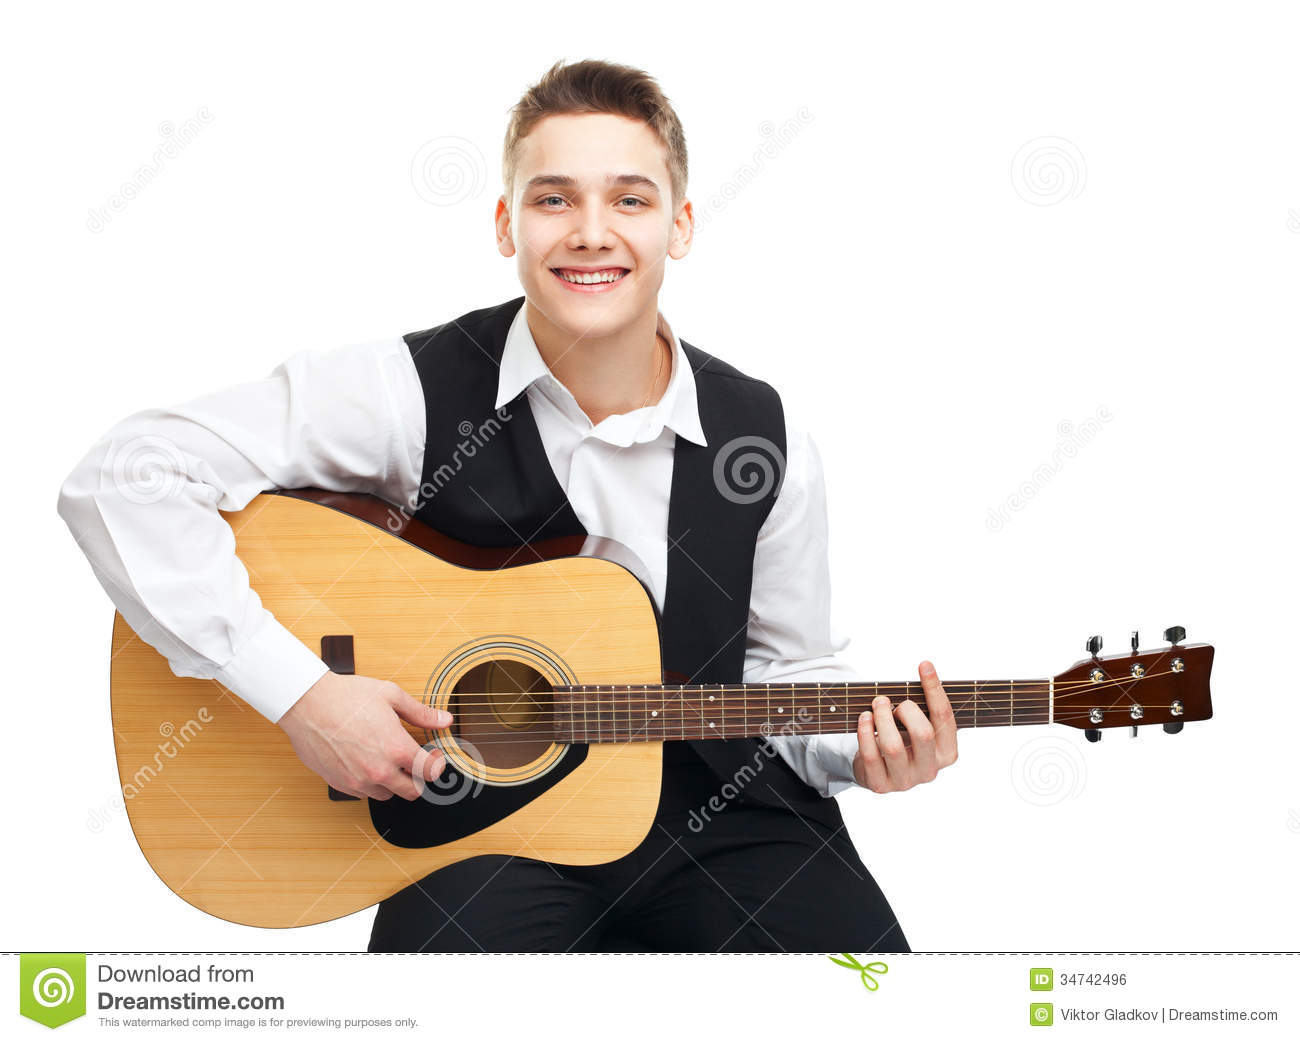 guitar playing chair steelcase accessories young man on royalty free stock image